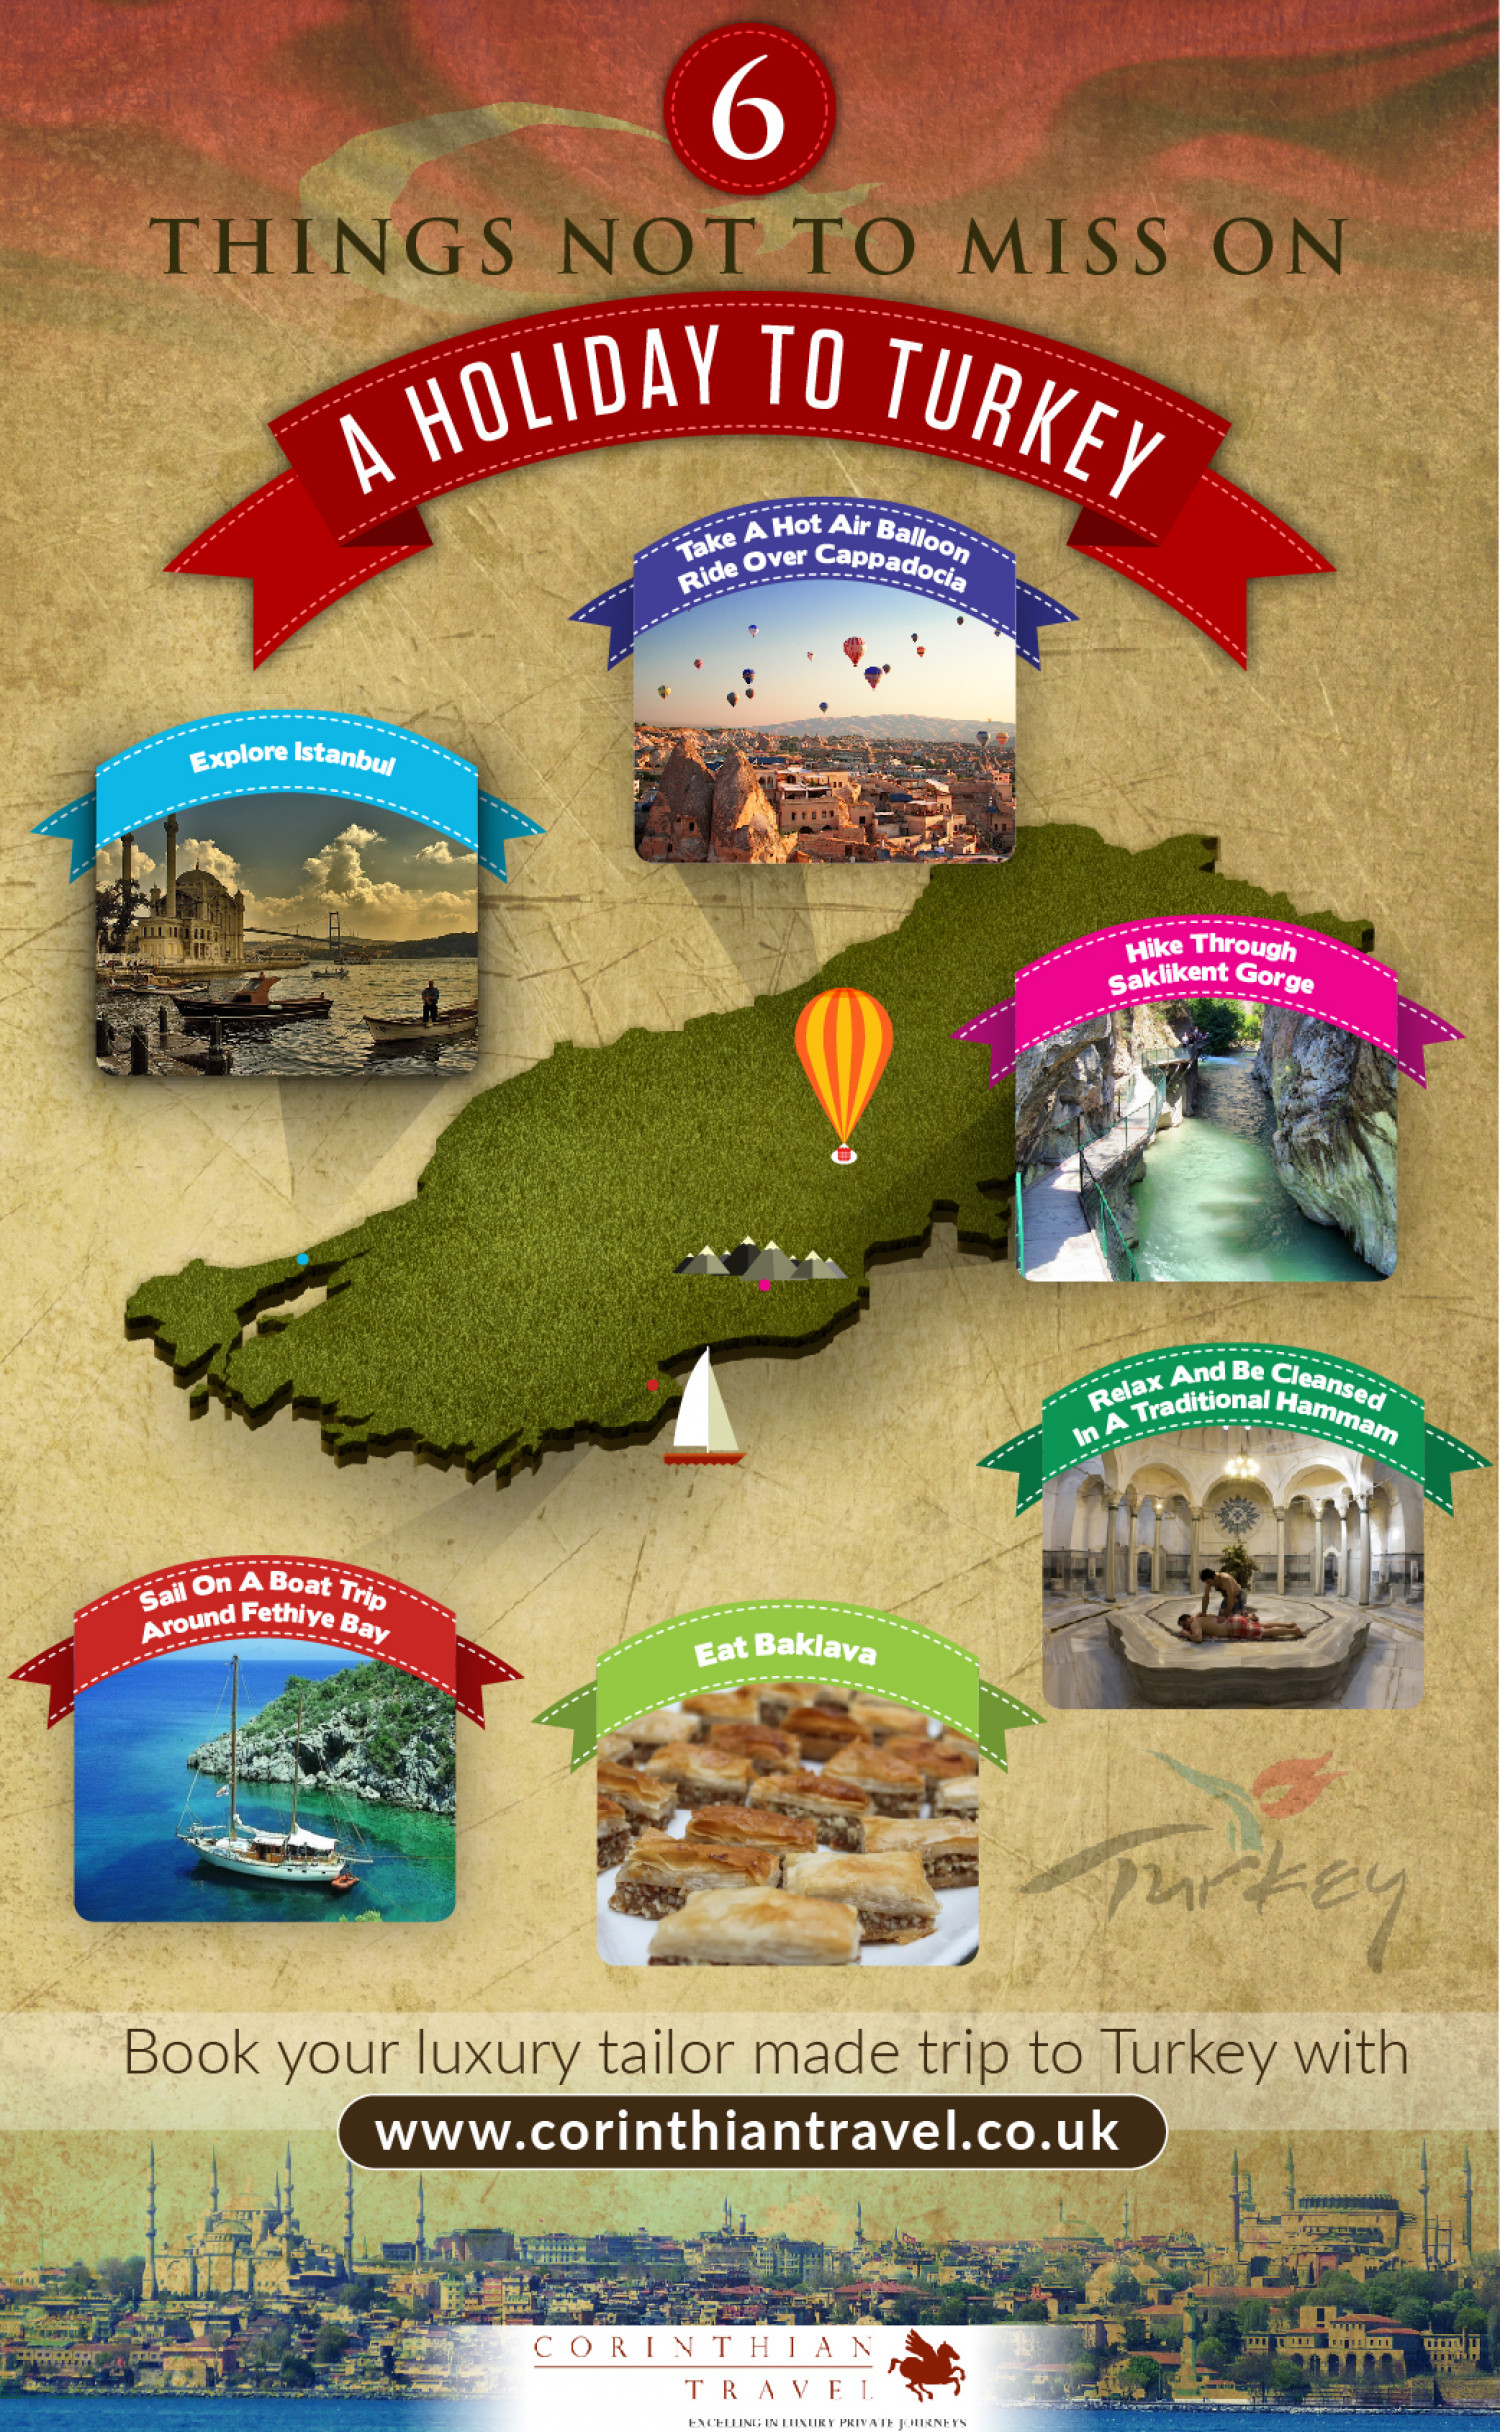 6 Things to See on Holiday in Turkey Infographic